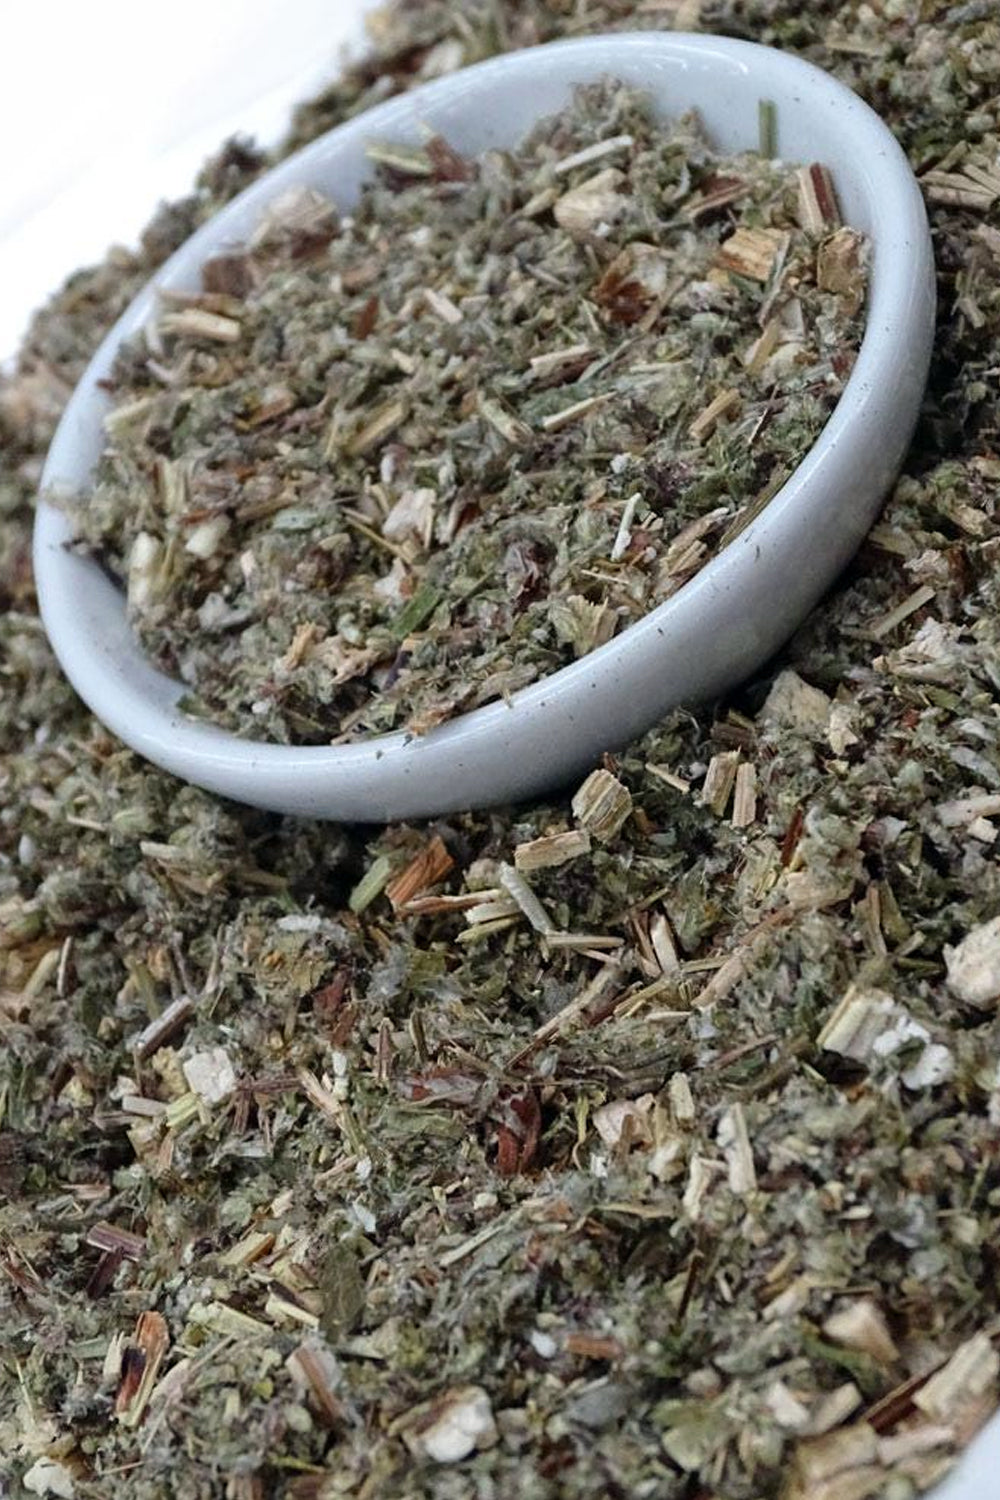 mugwort for lucid dreams...